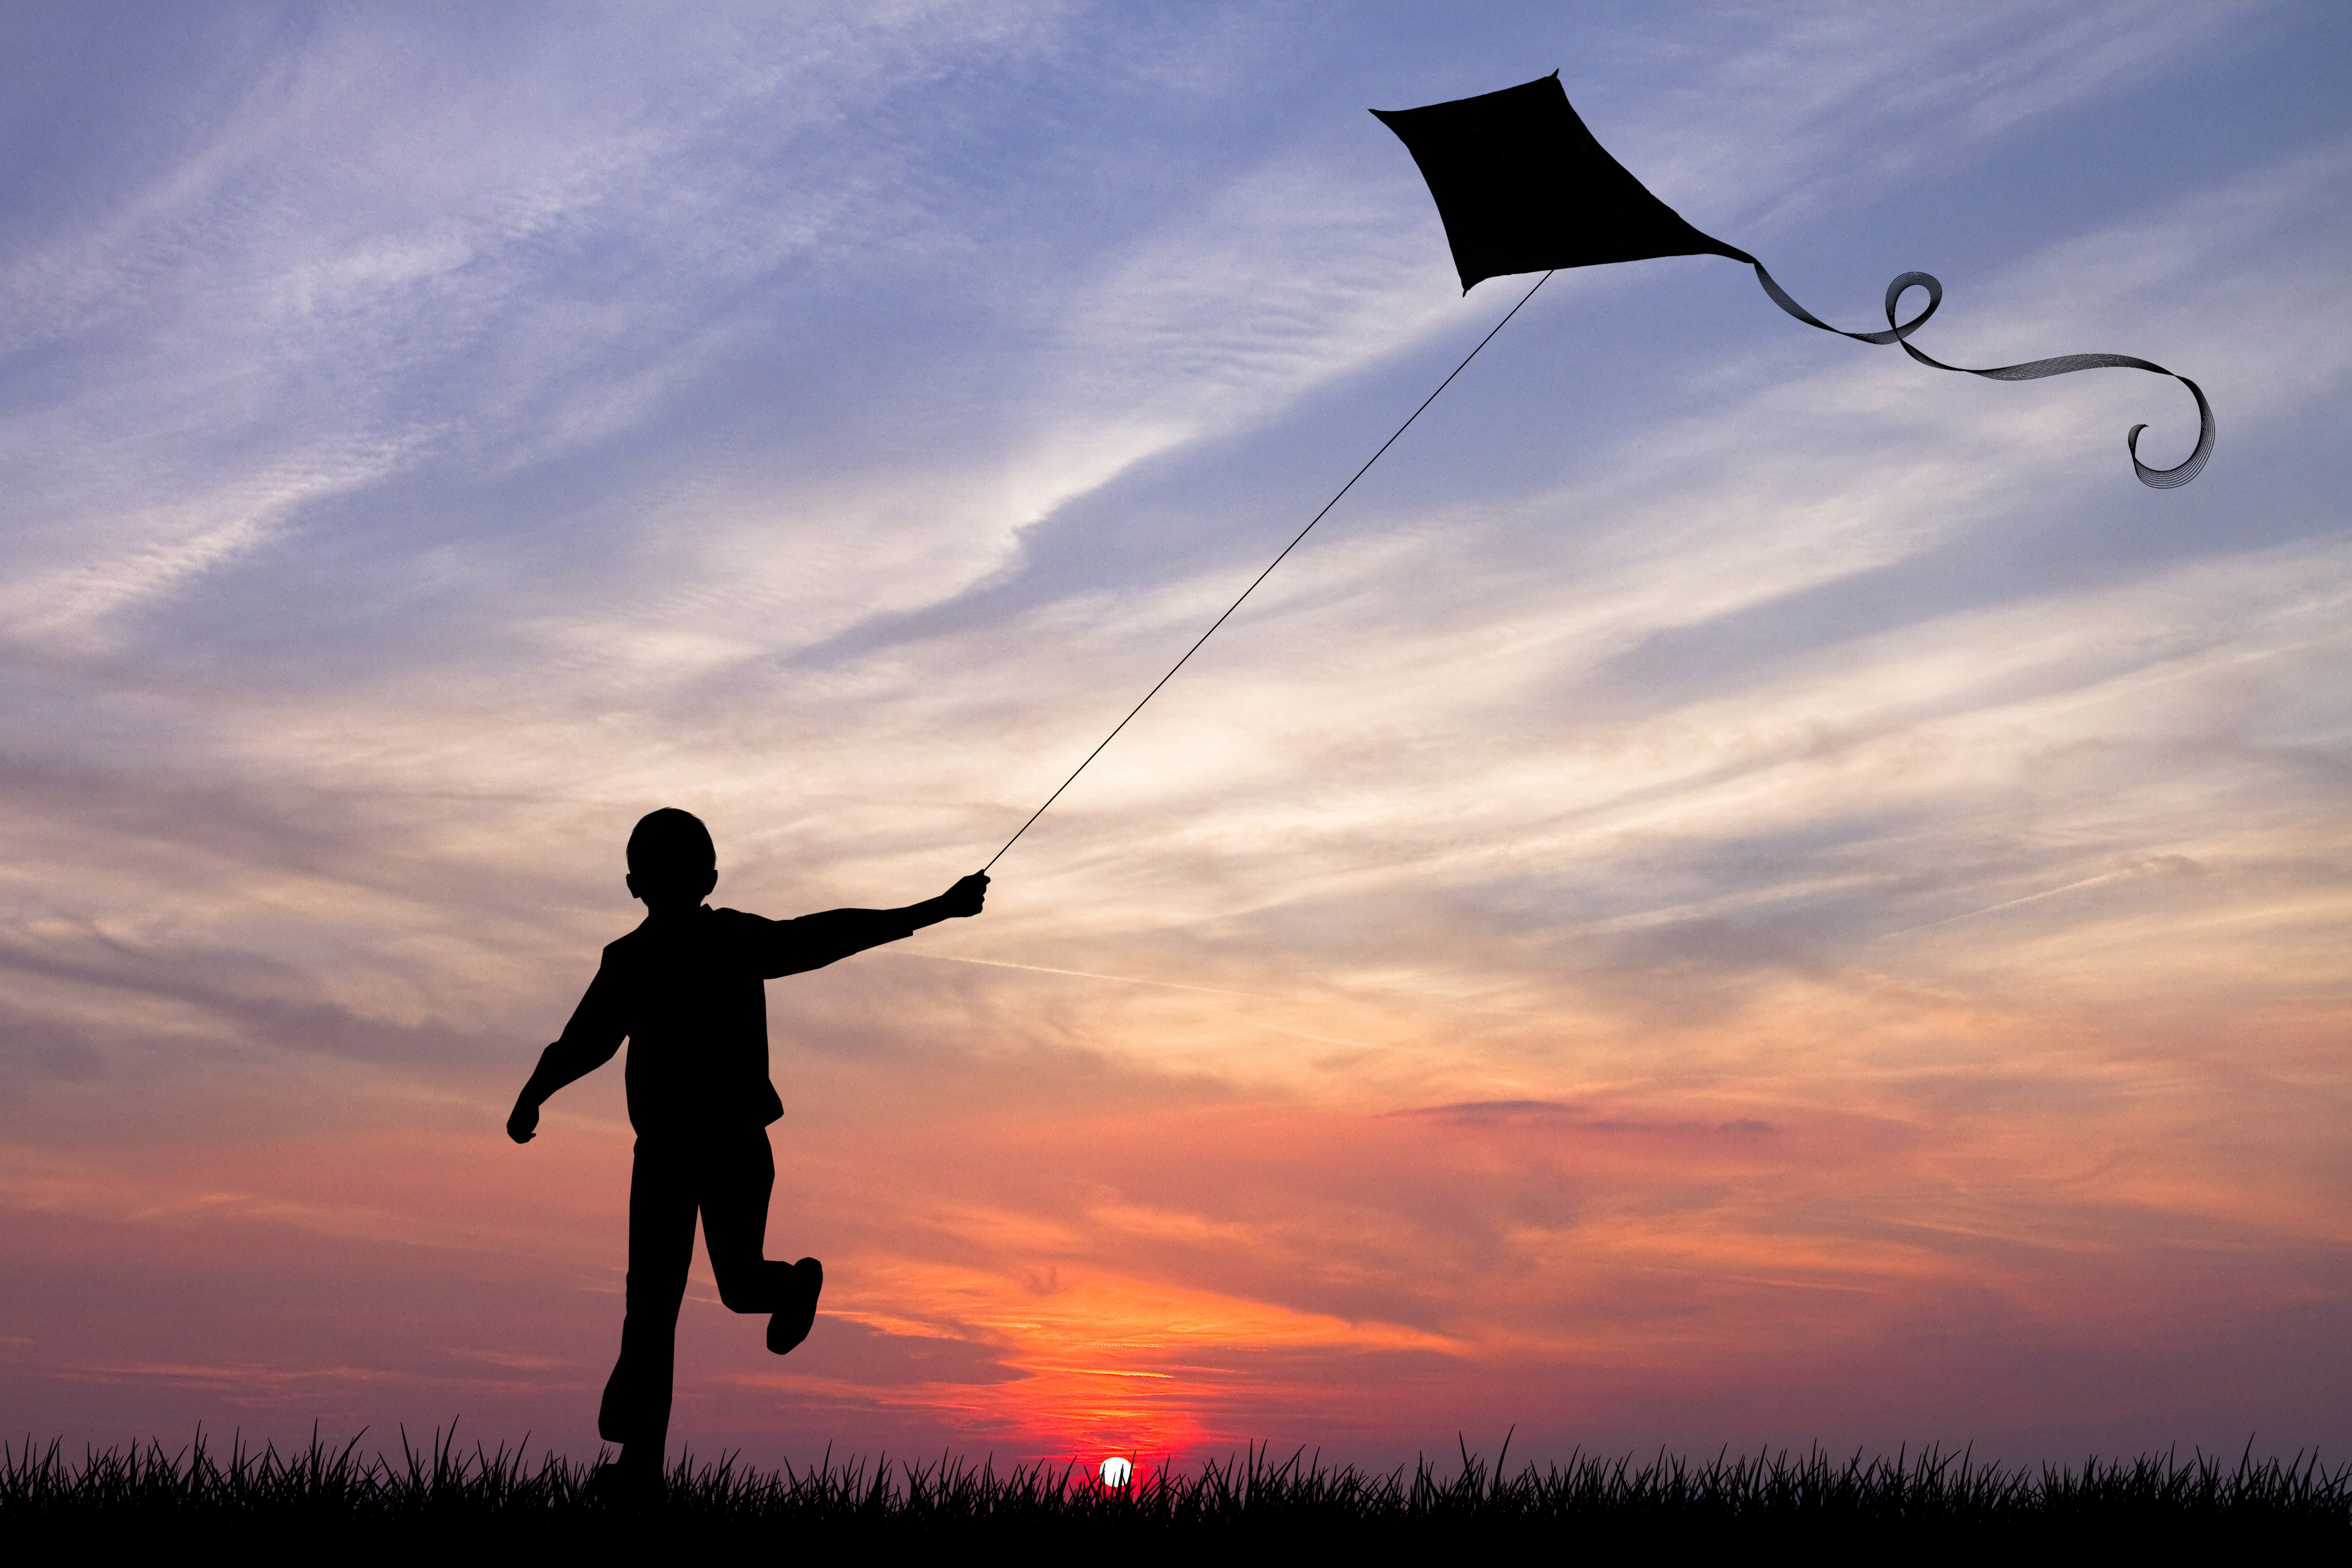 Boy with flying kite running towards the sunset at the horizon